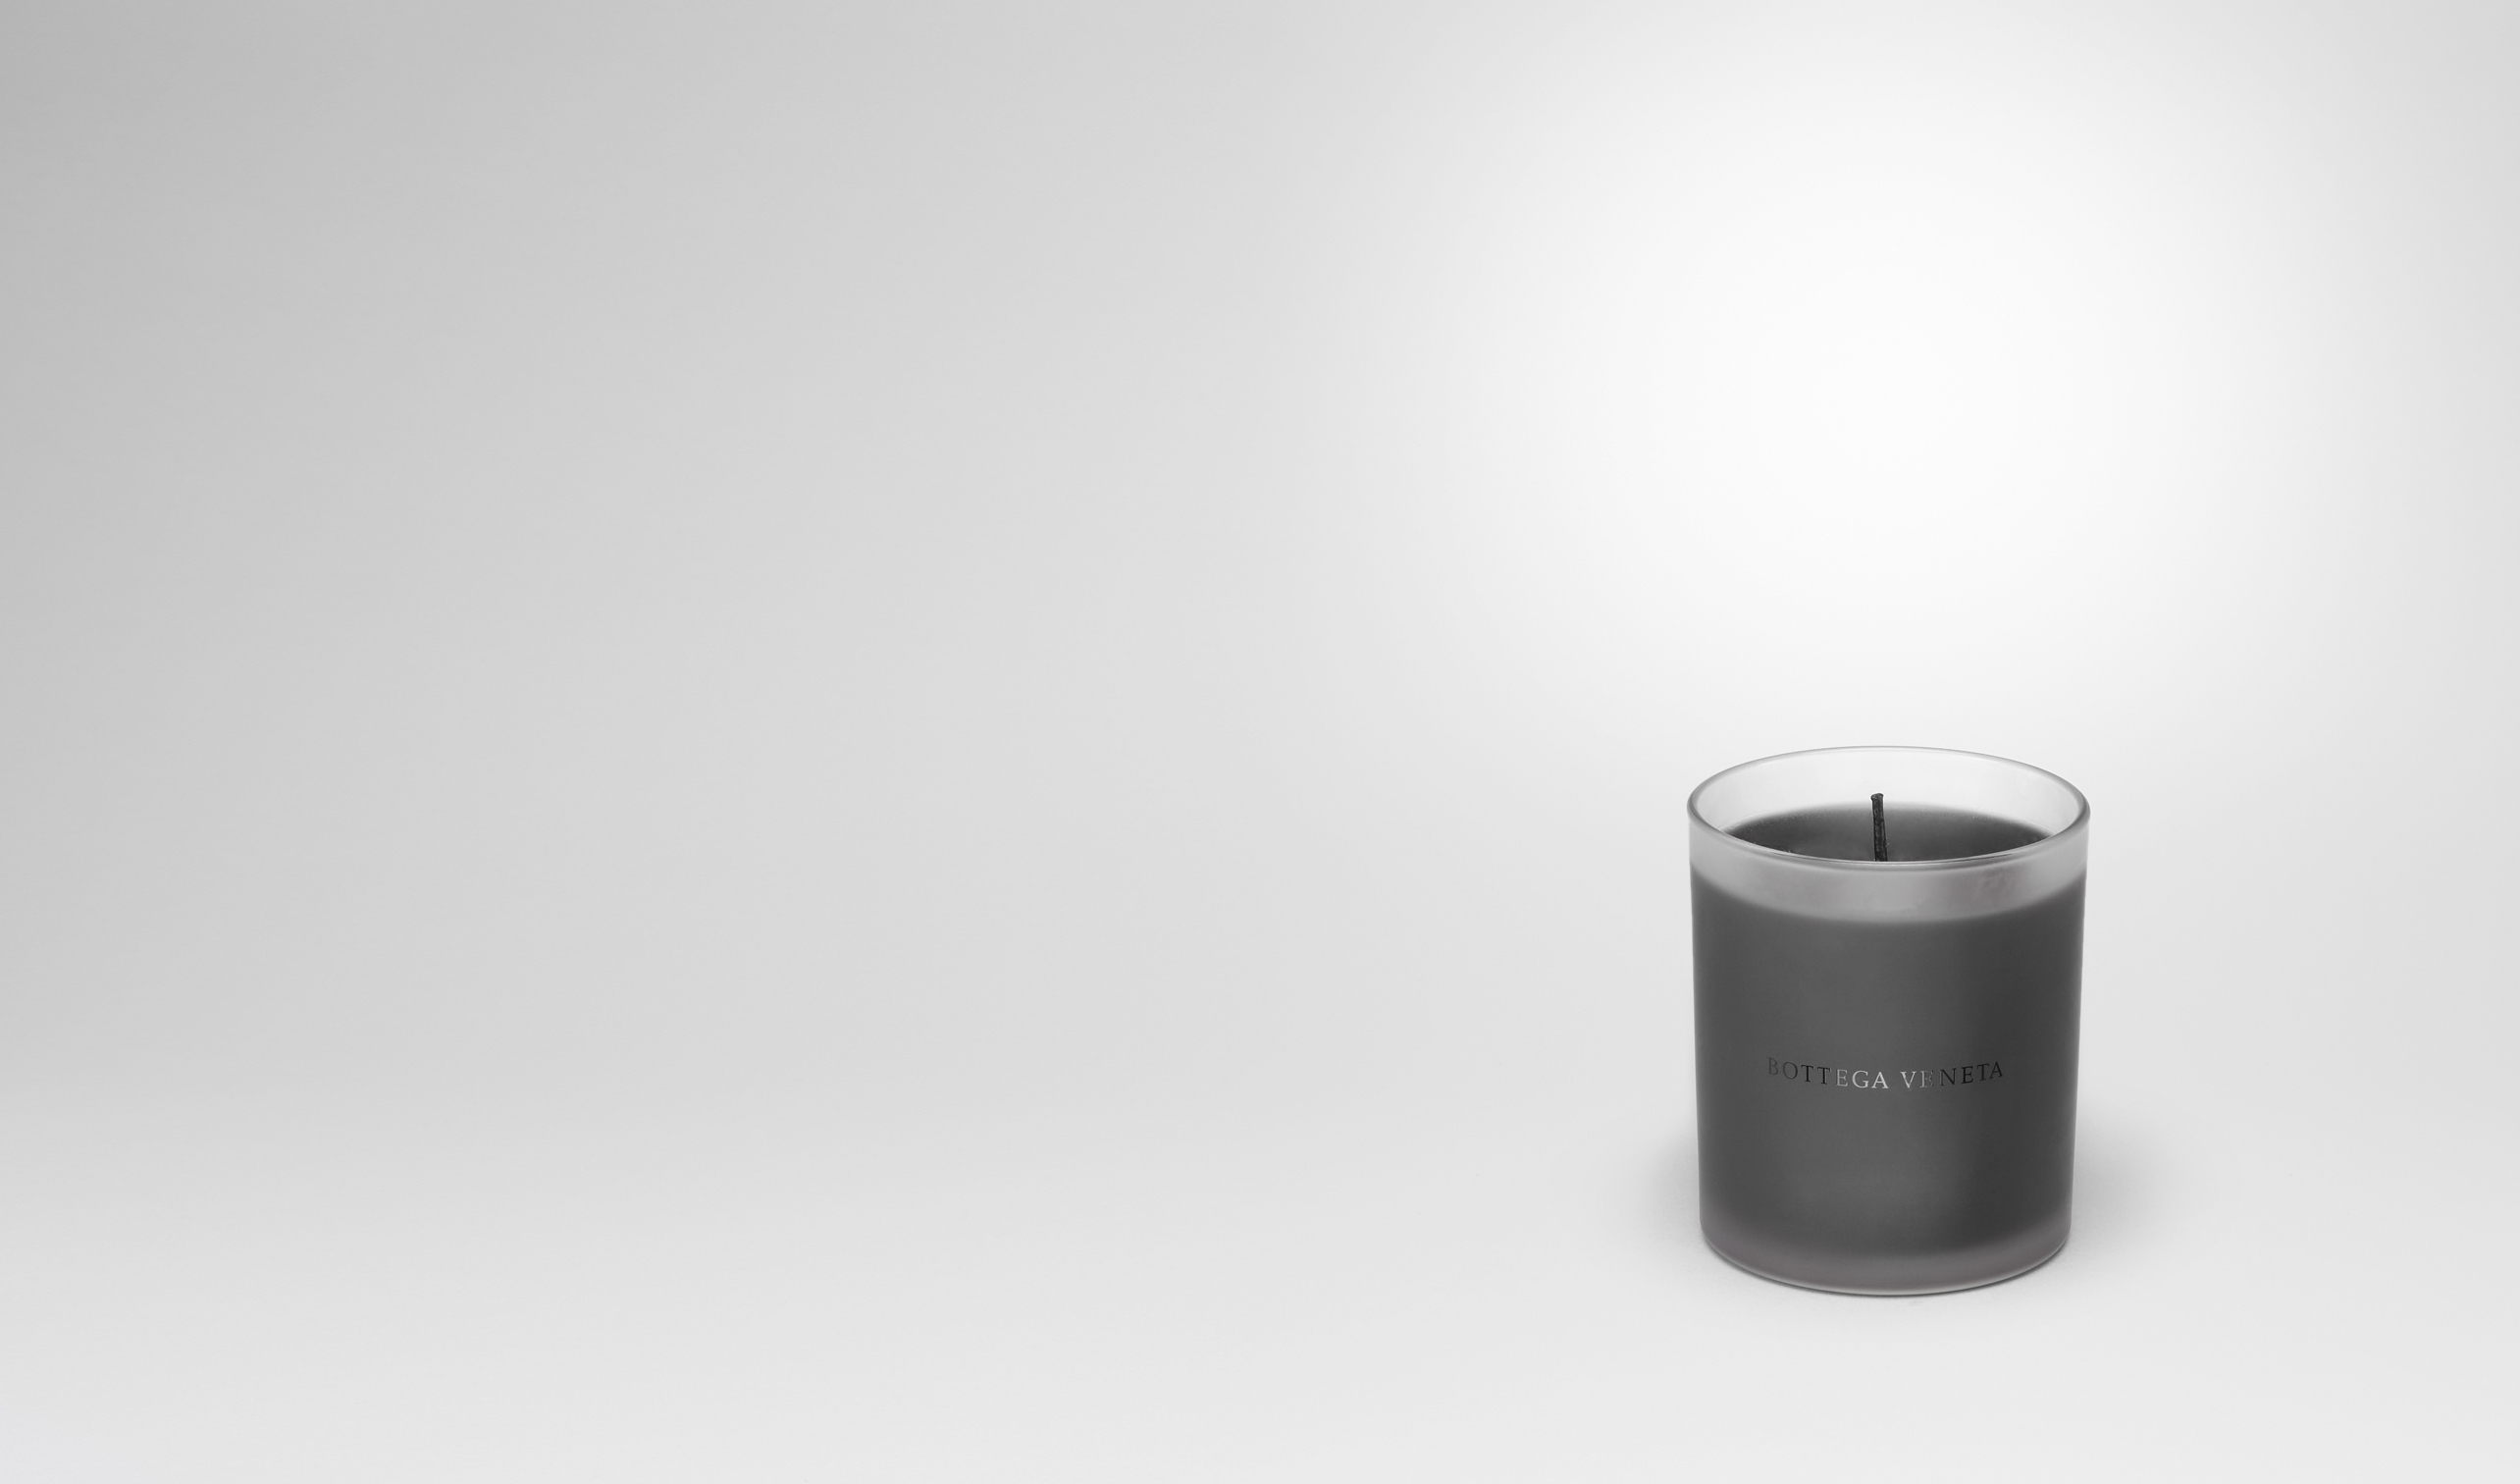 BOTTEGA VENETA Candle E Frosted Glass Boisé Candle pl